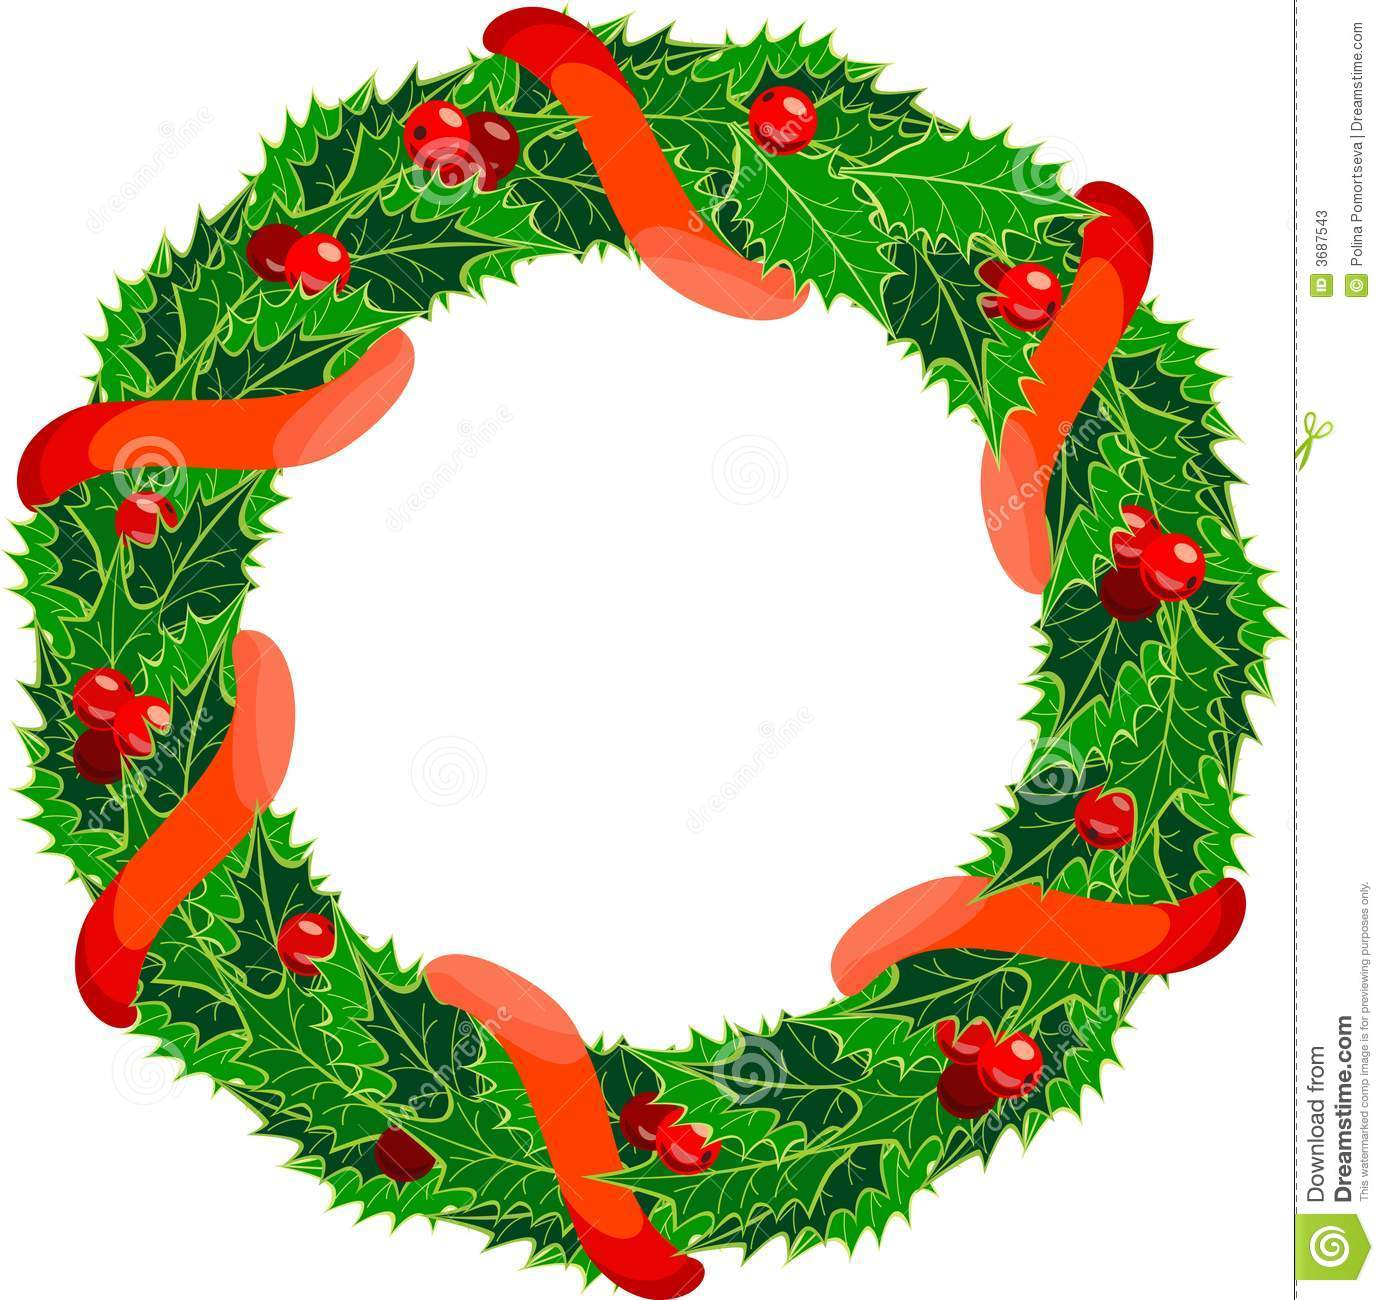 1384x1300 Wreath Clipart Holly Wreath